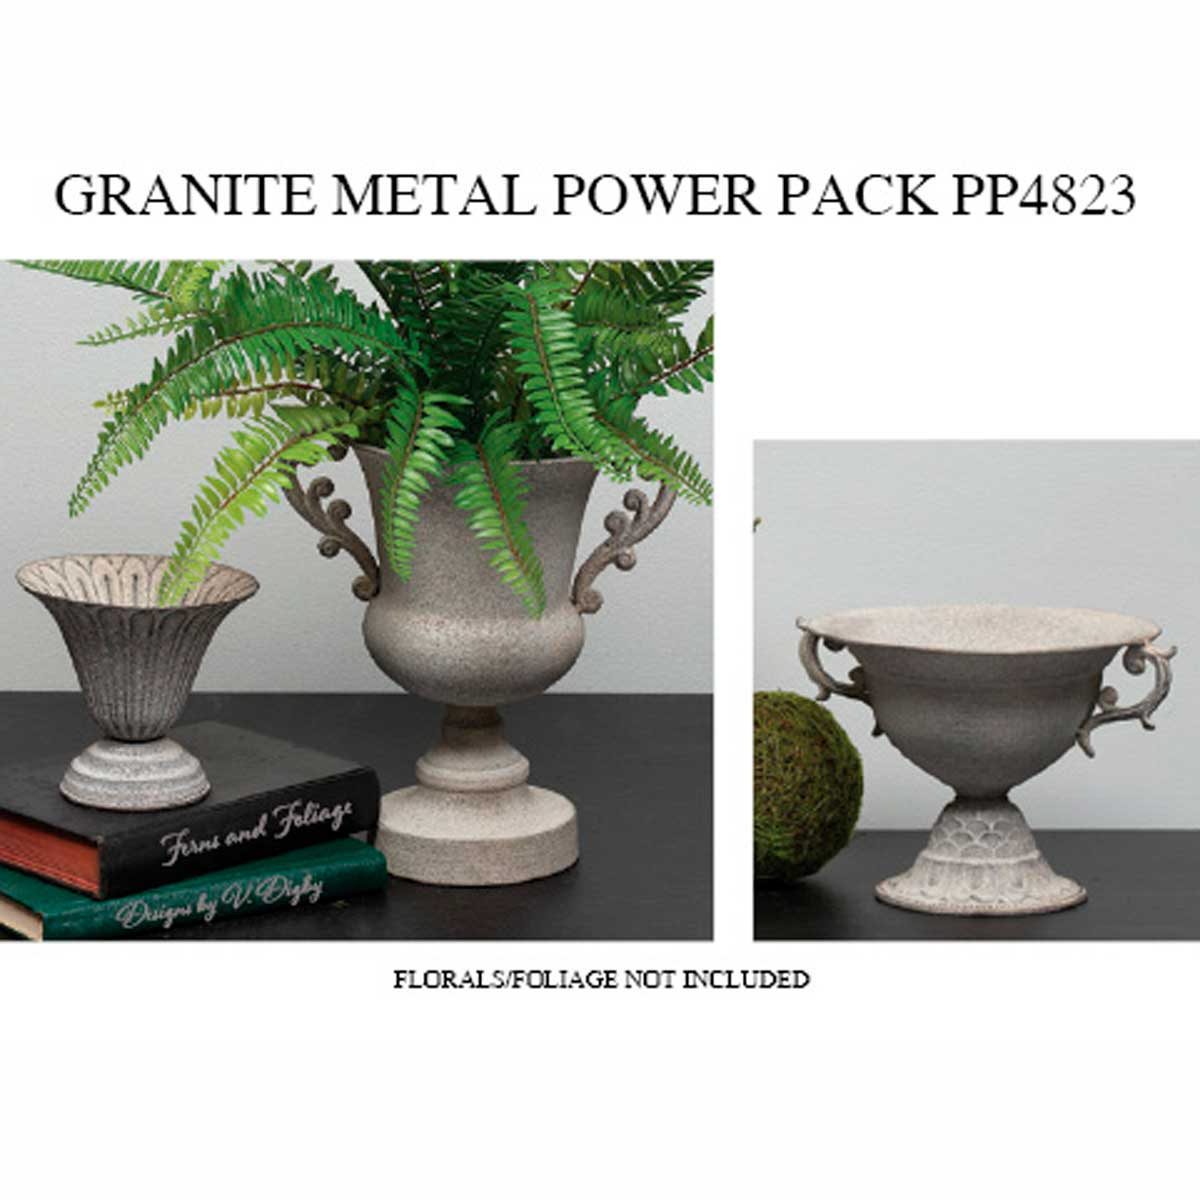 METAL GRANITE URN FINISH POWER PACK 6 UNITS